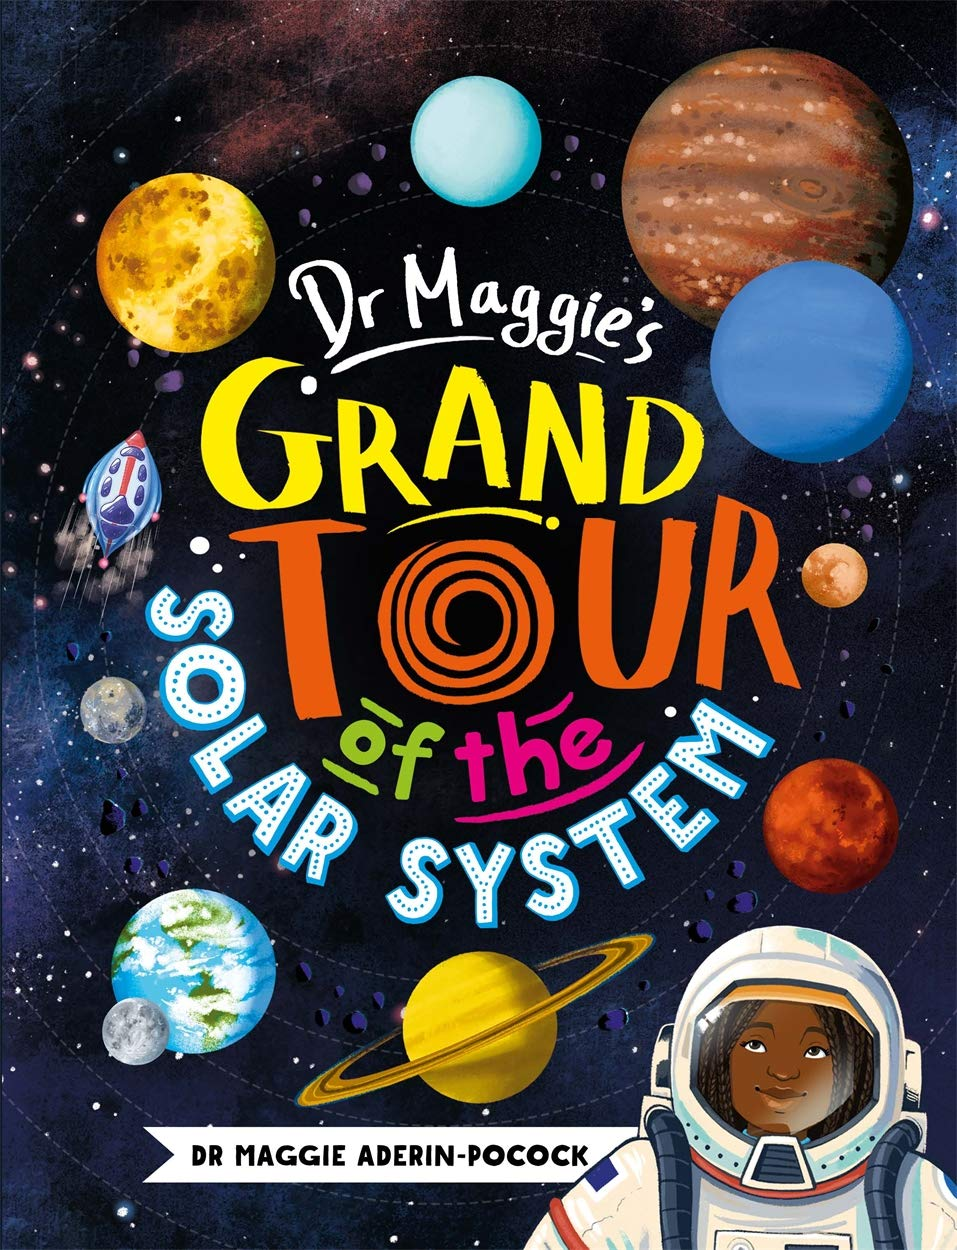 Dr Maggie's Grand Tour of the Solar System by Maggie Aderin Pocock